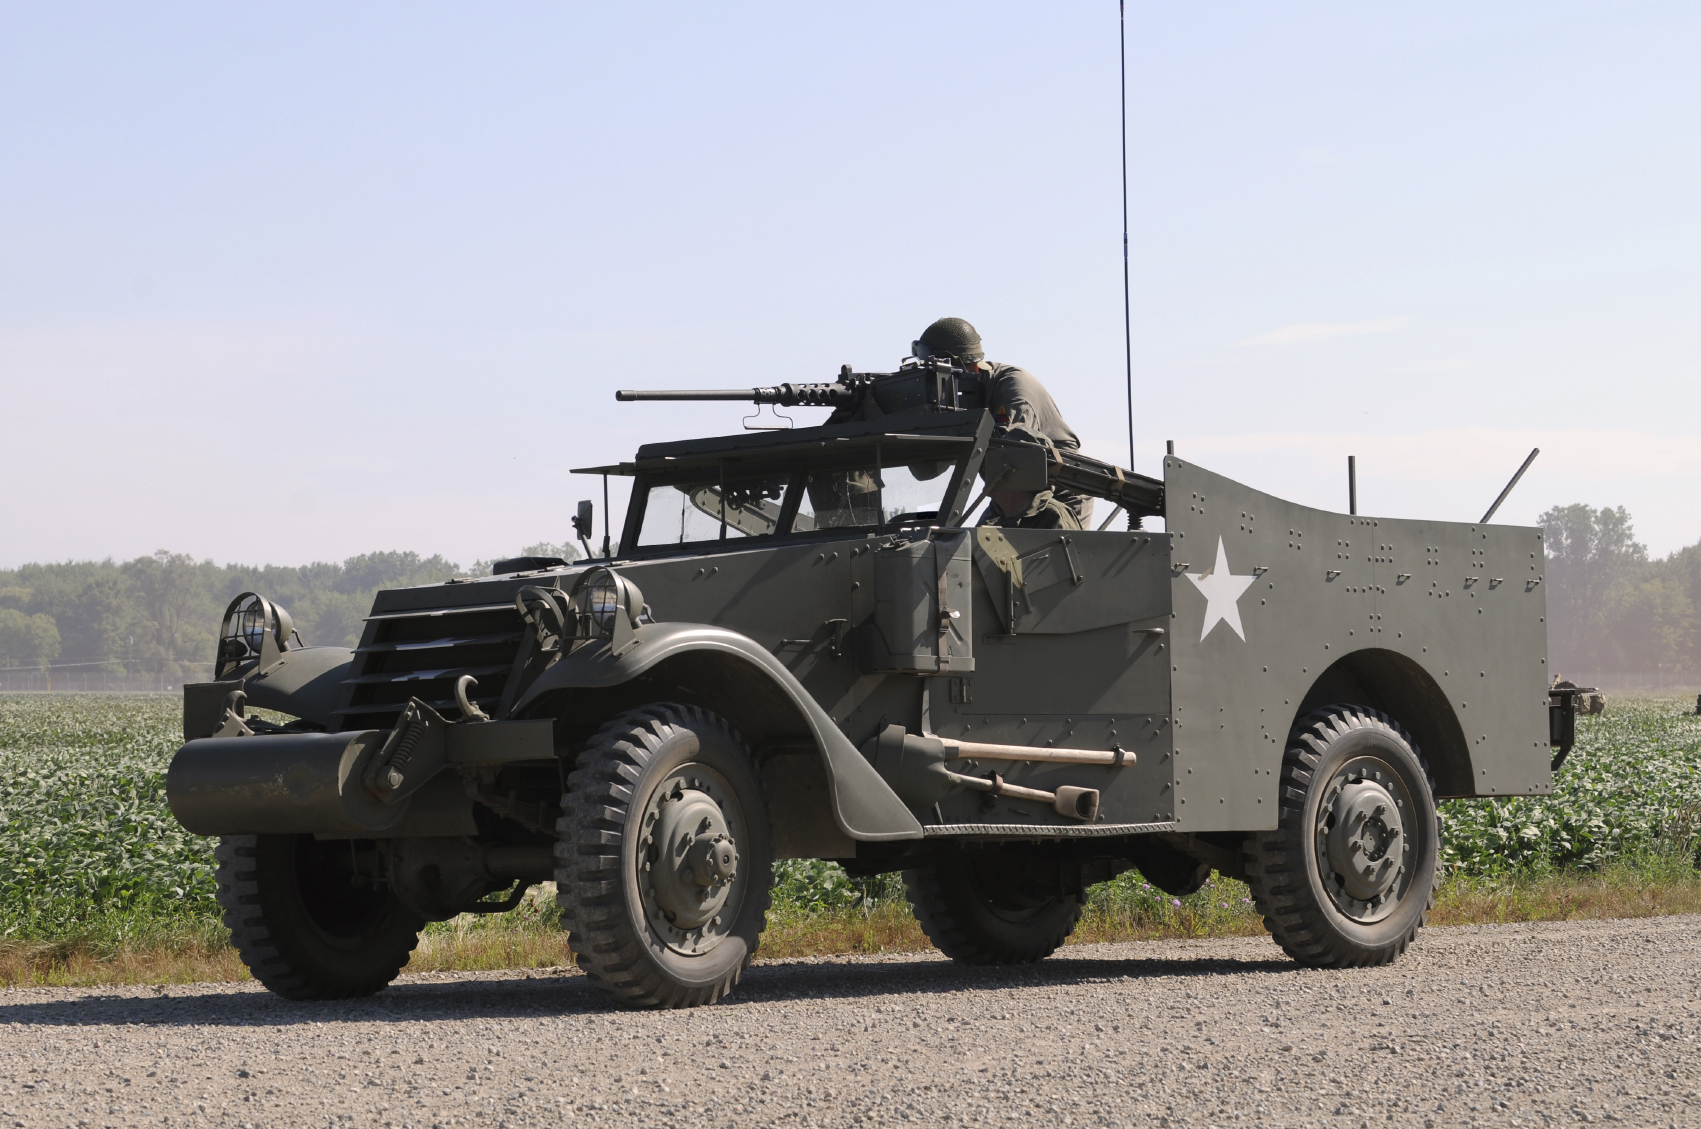 Car Insurance News: 25% Discount on Classic Military Vehicle Insurance